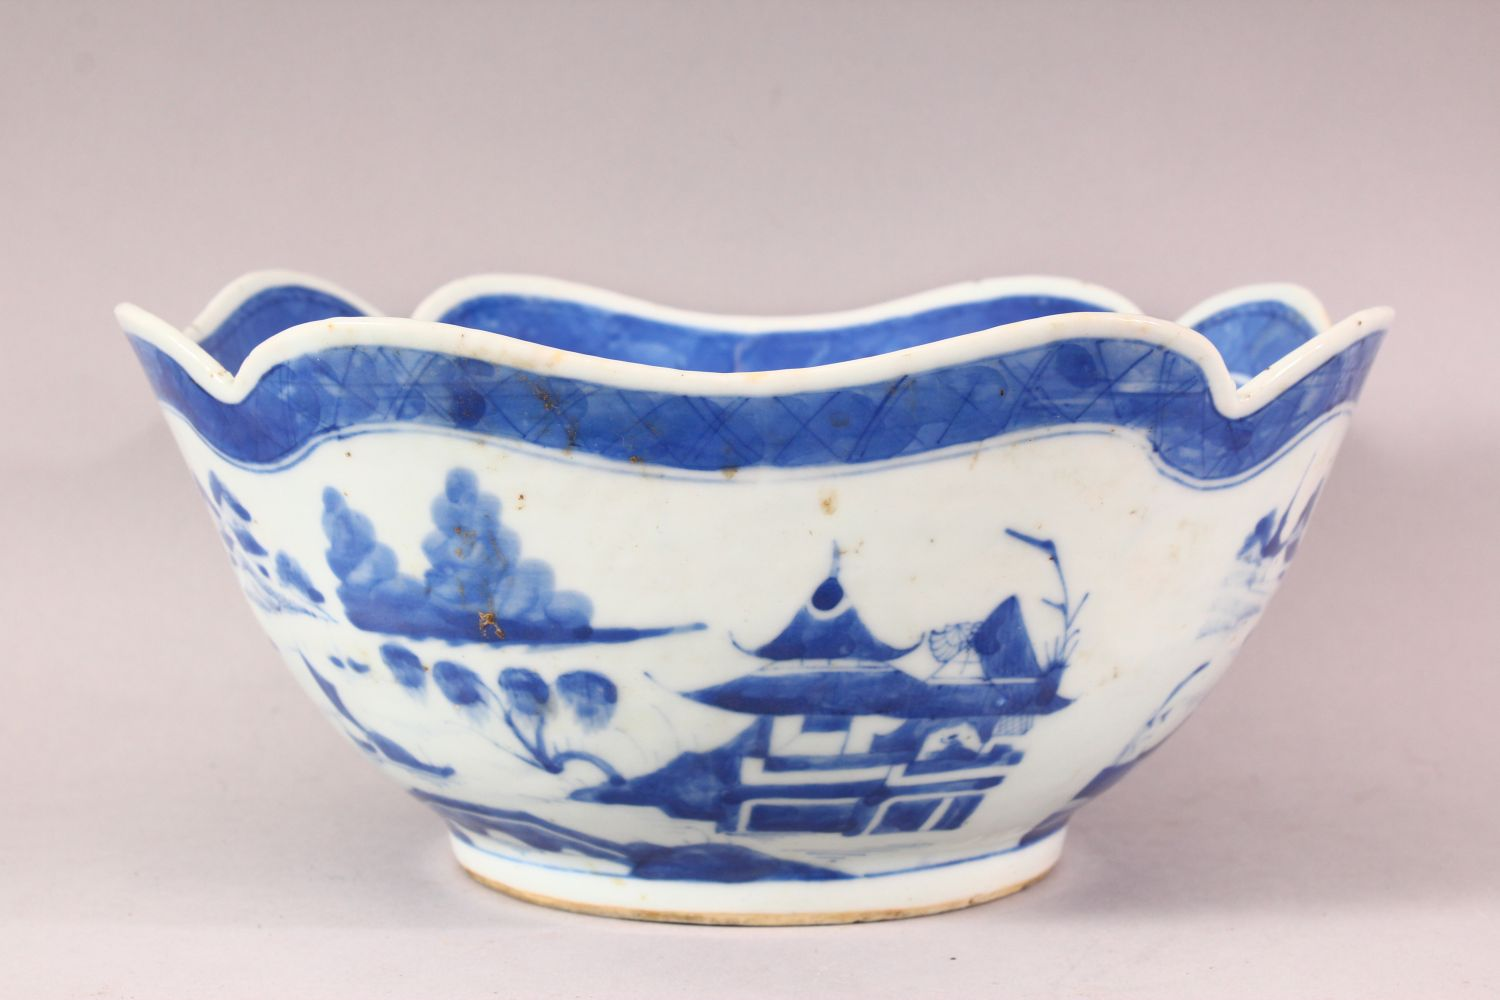 AN 18TH / 19TH CENTURY CHINESE BLUE & WHITE PORCELAIN BOWL, of quatrefoil form, decorated with - Image 4 of 6